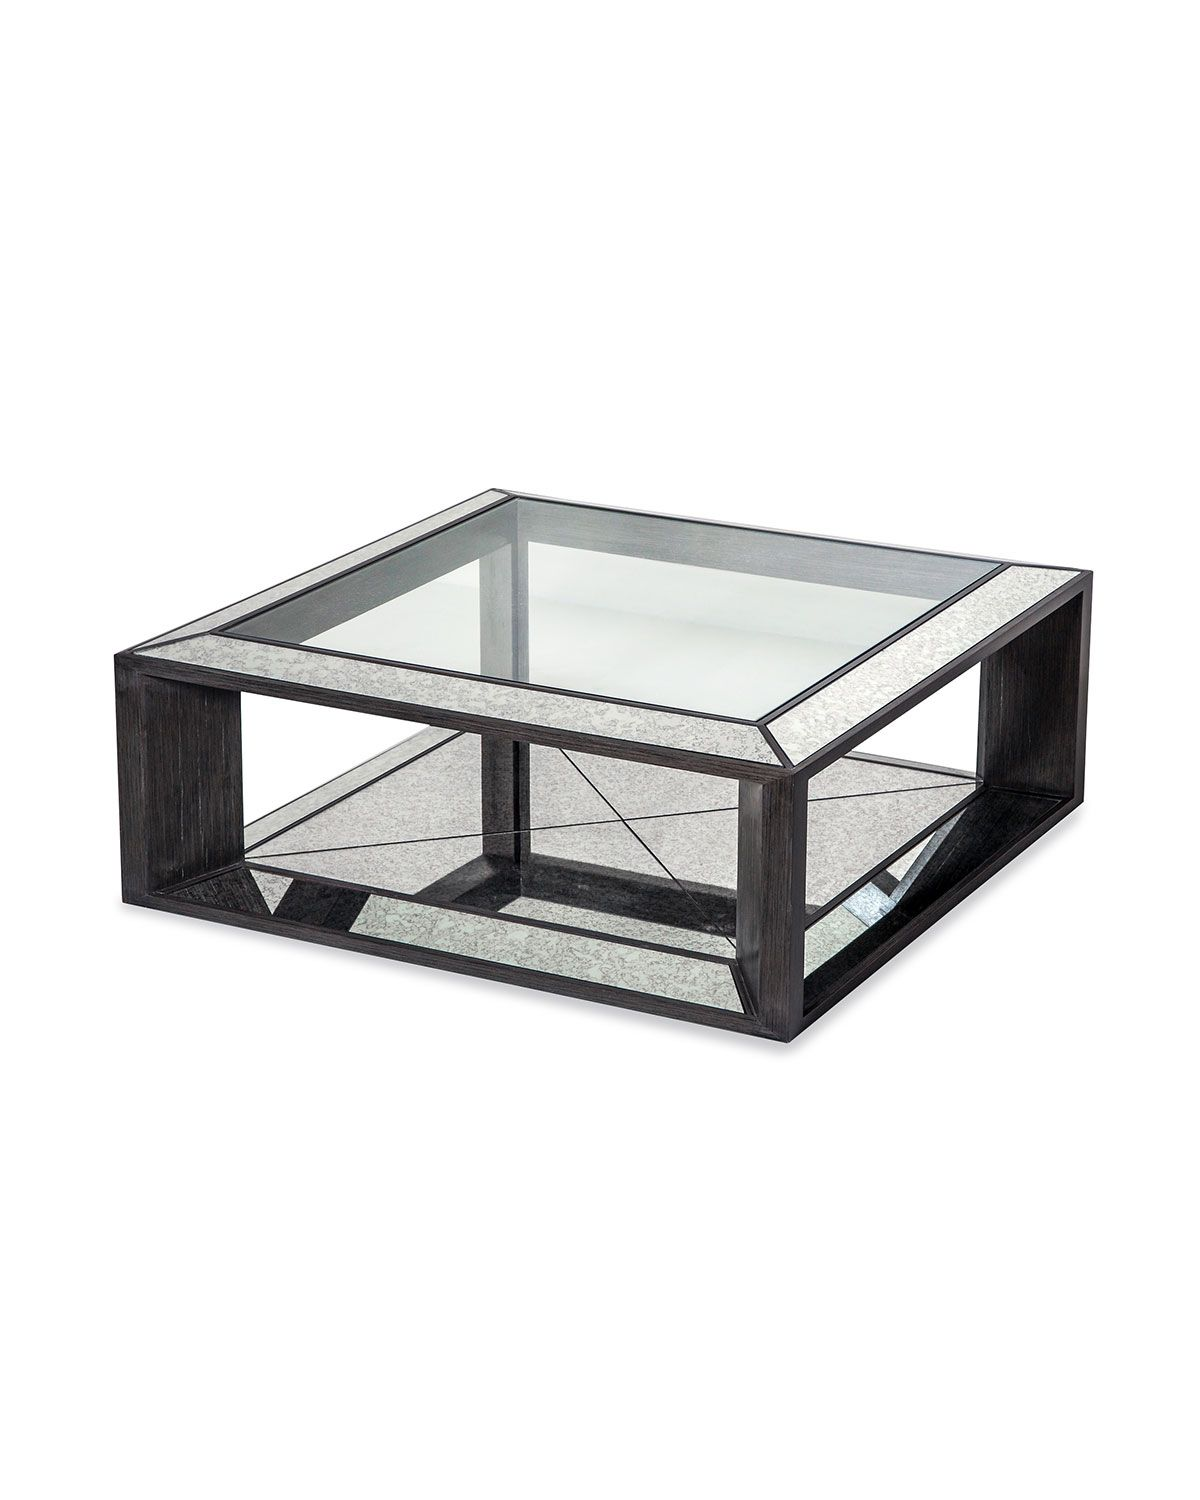 Corbin Coffee Table Grey WashINTERLUDEAccent Tables